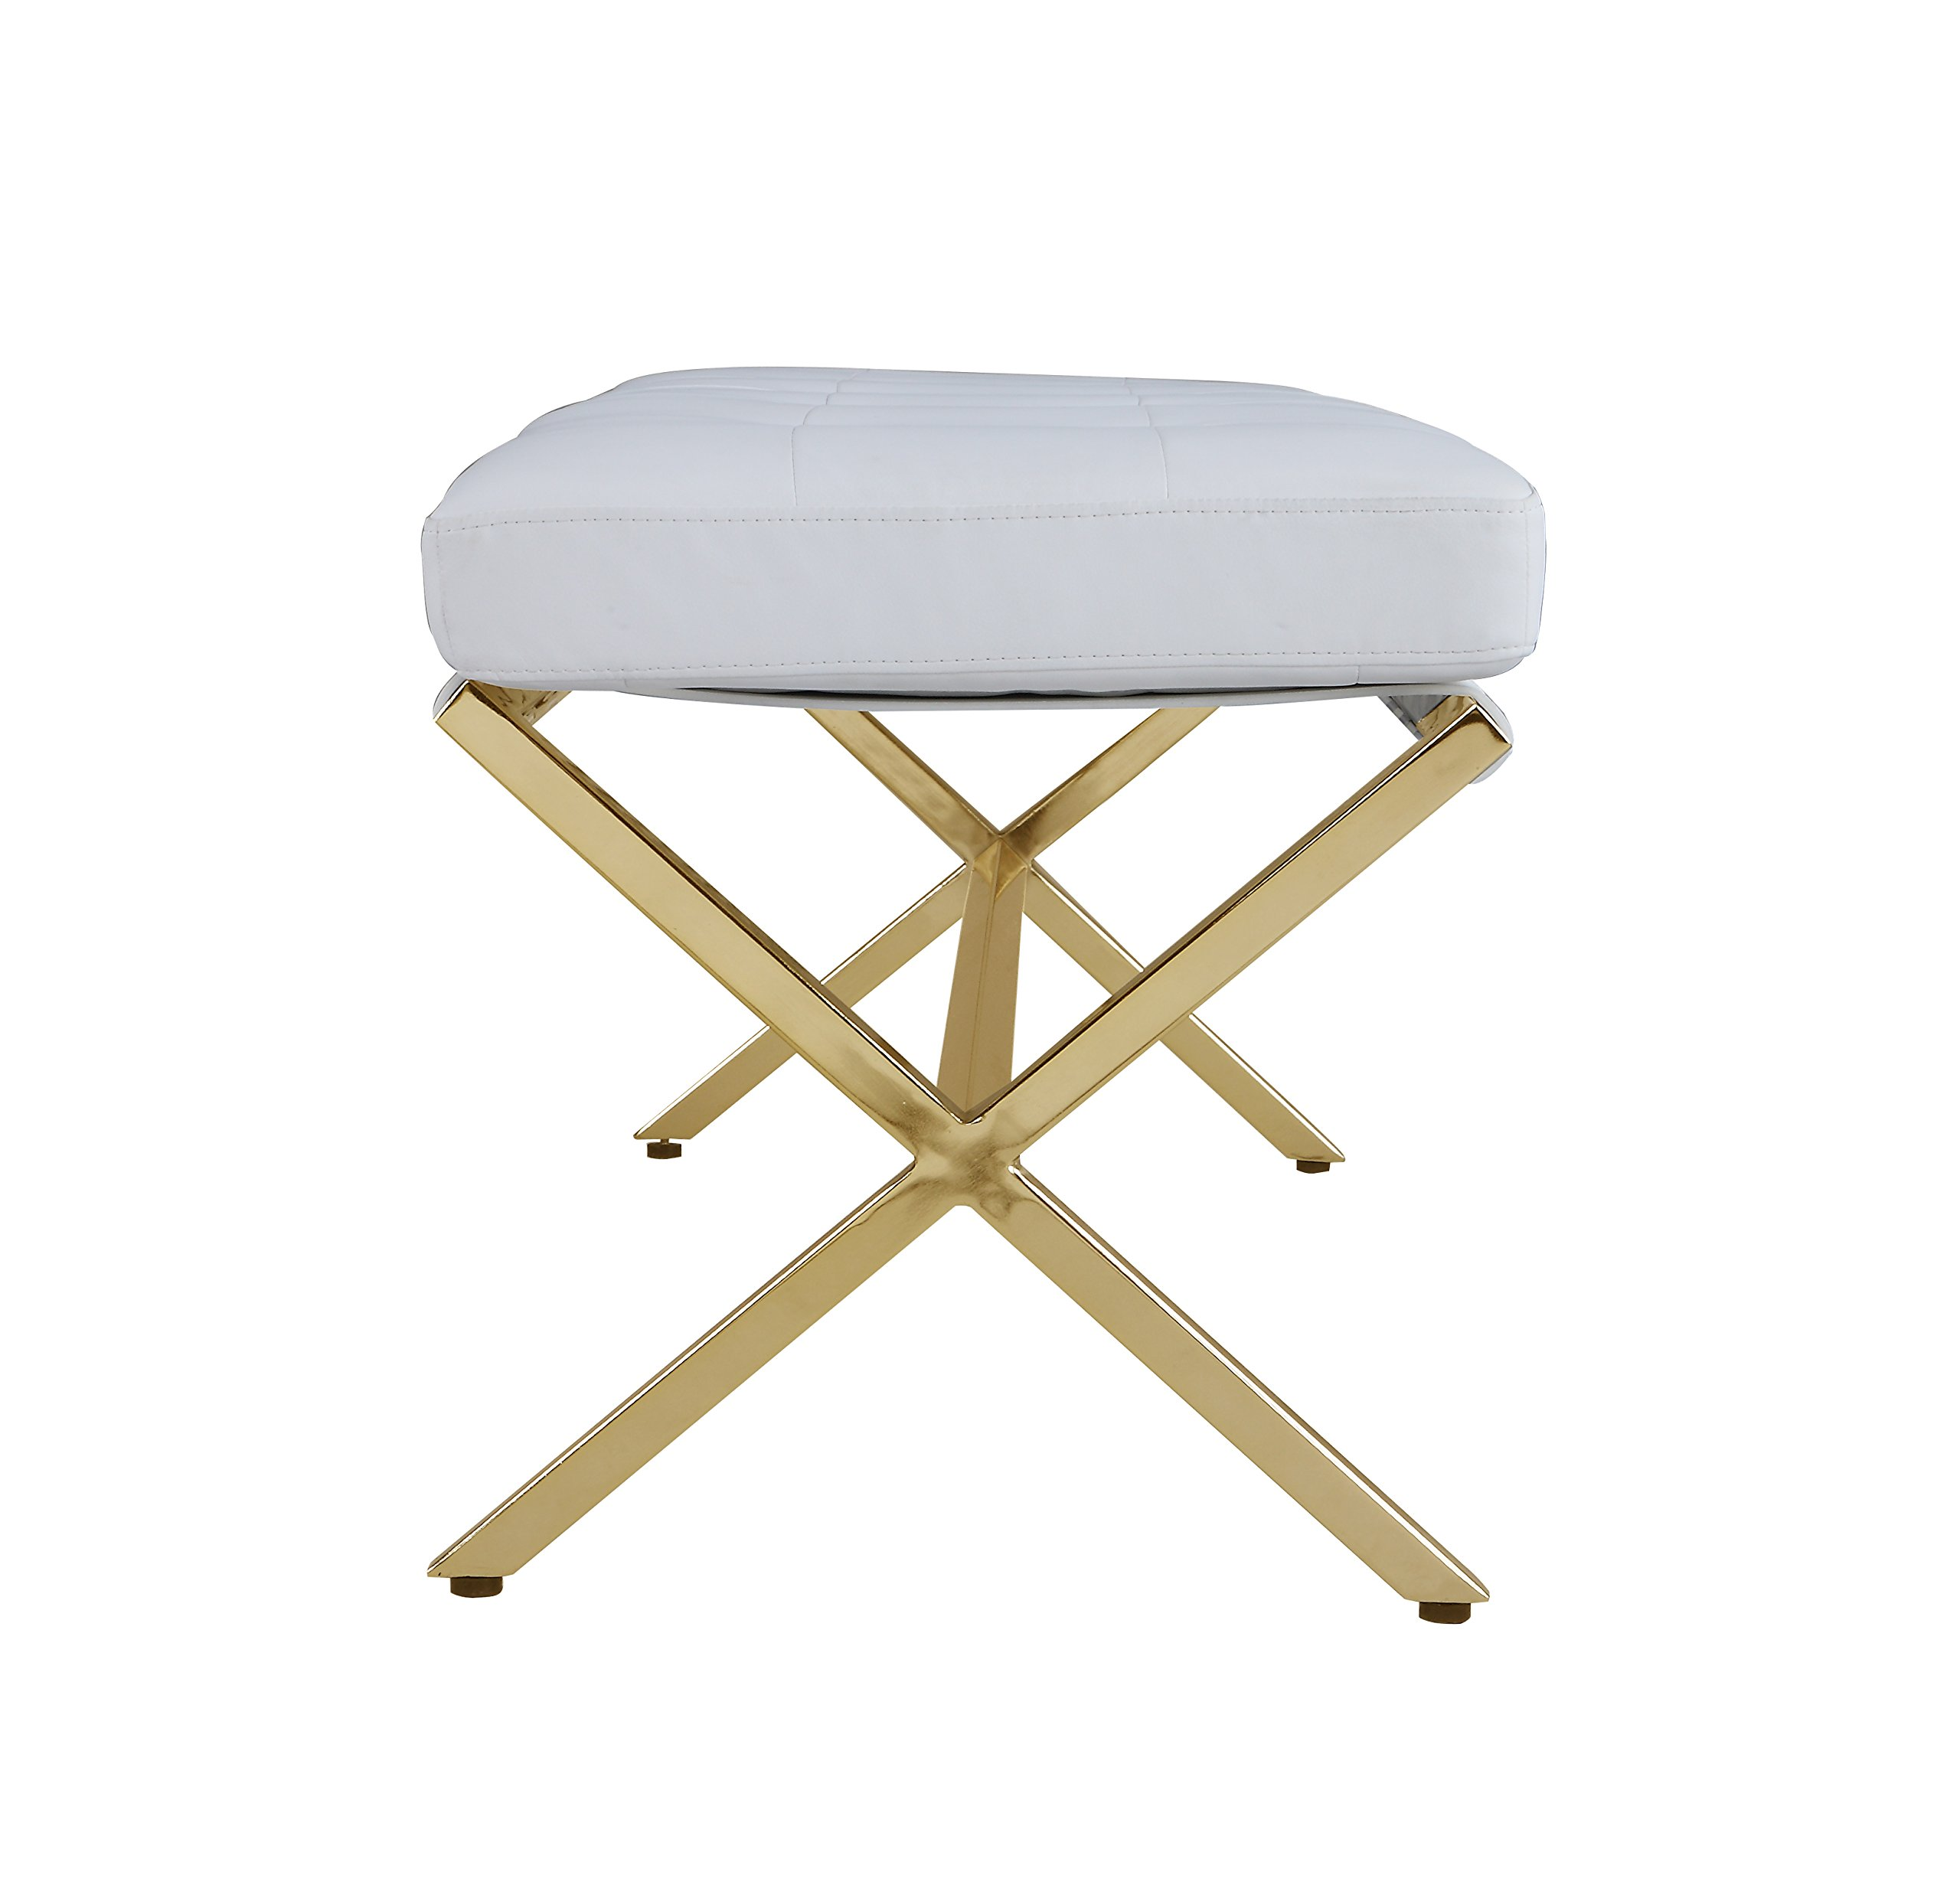 Iconic Home Claudio PU Leather Modern Contemporary Tufted Seating Goldtone Metal Leg Bench, White by Iconic Home (Image #3)